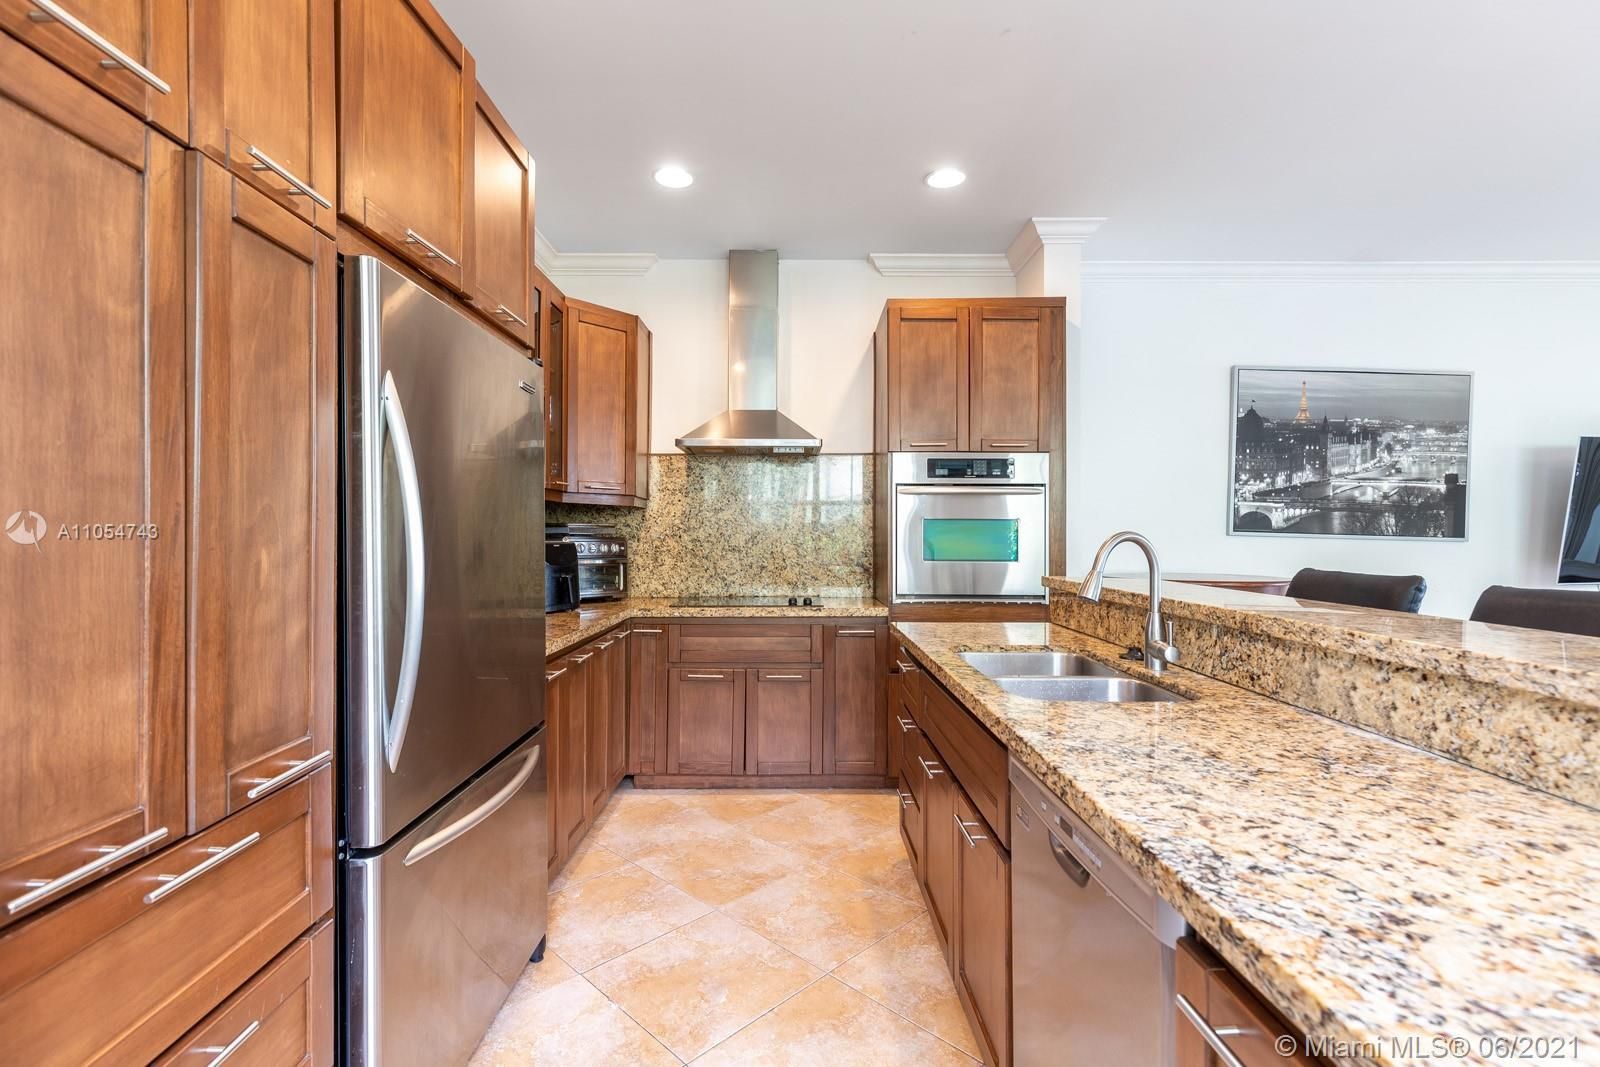 Welcome home! This beautiful and rare 3,023 sq ft 3-story townhome is located in one of the most pop